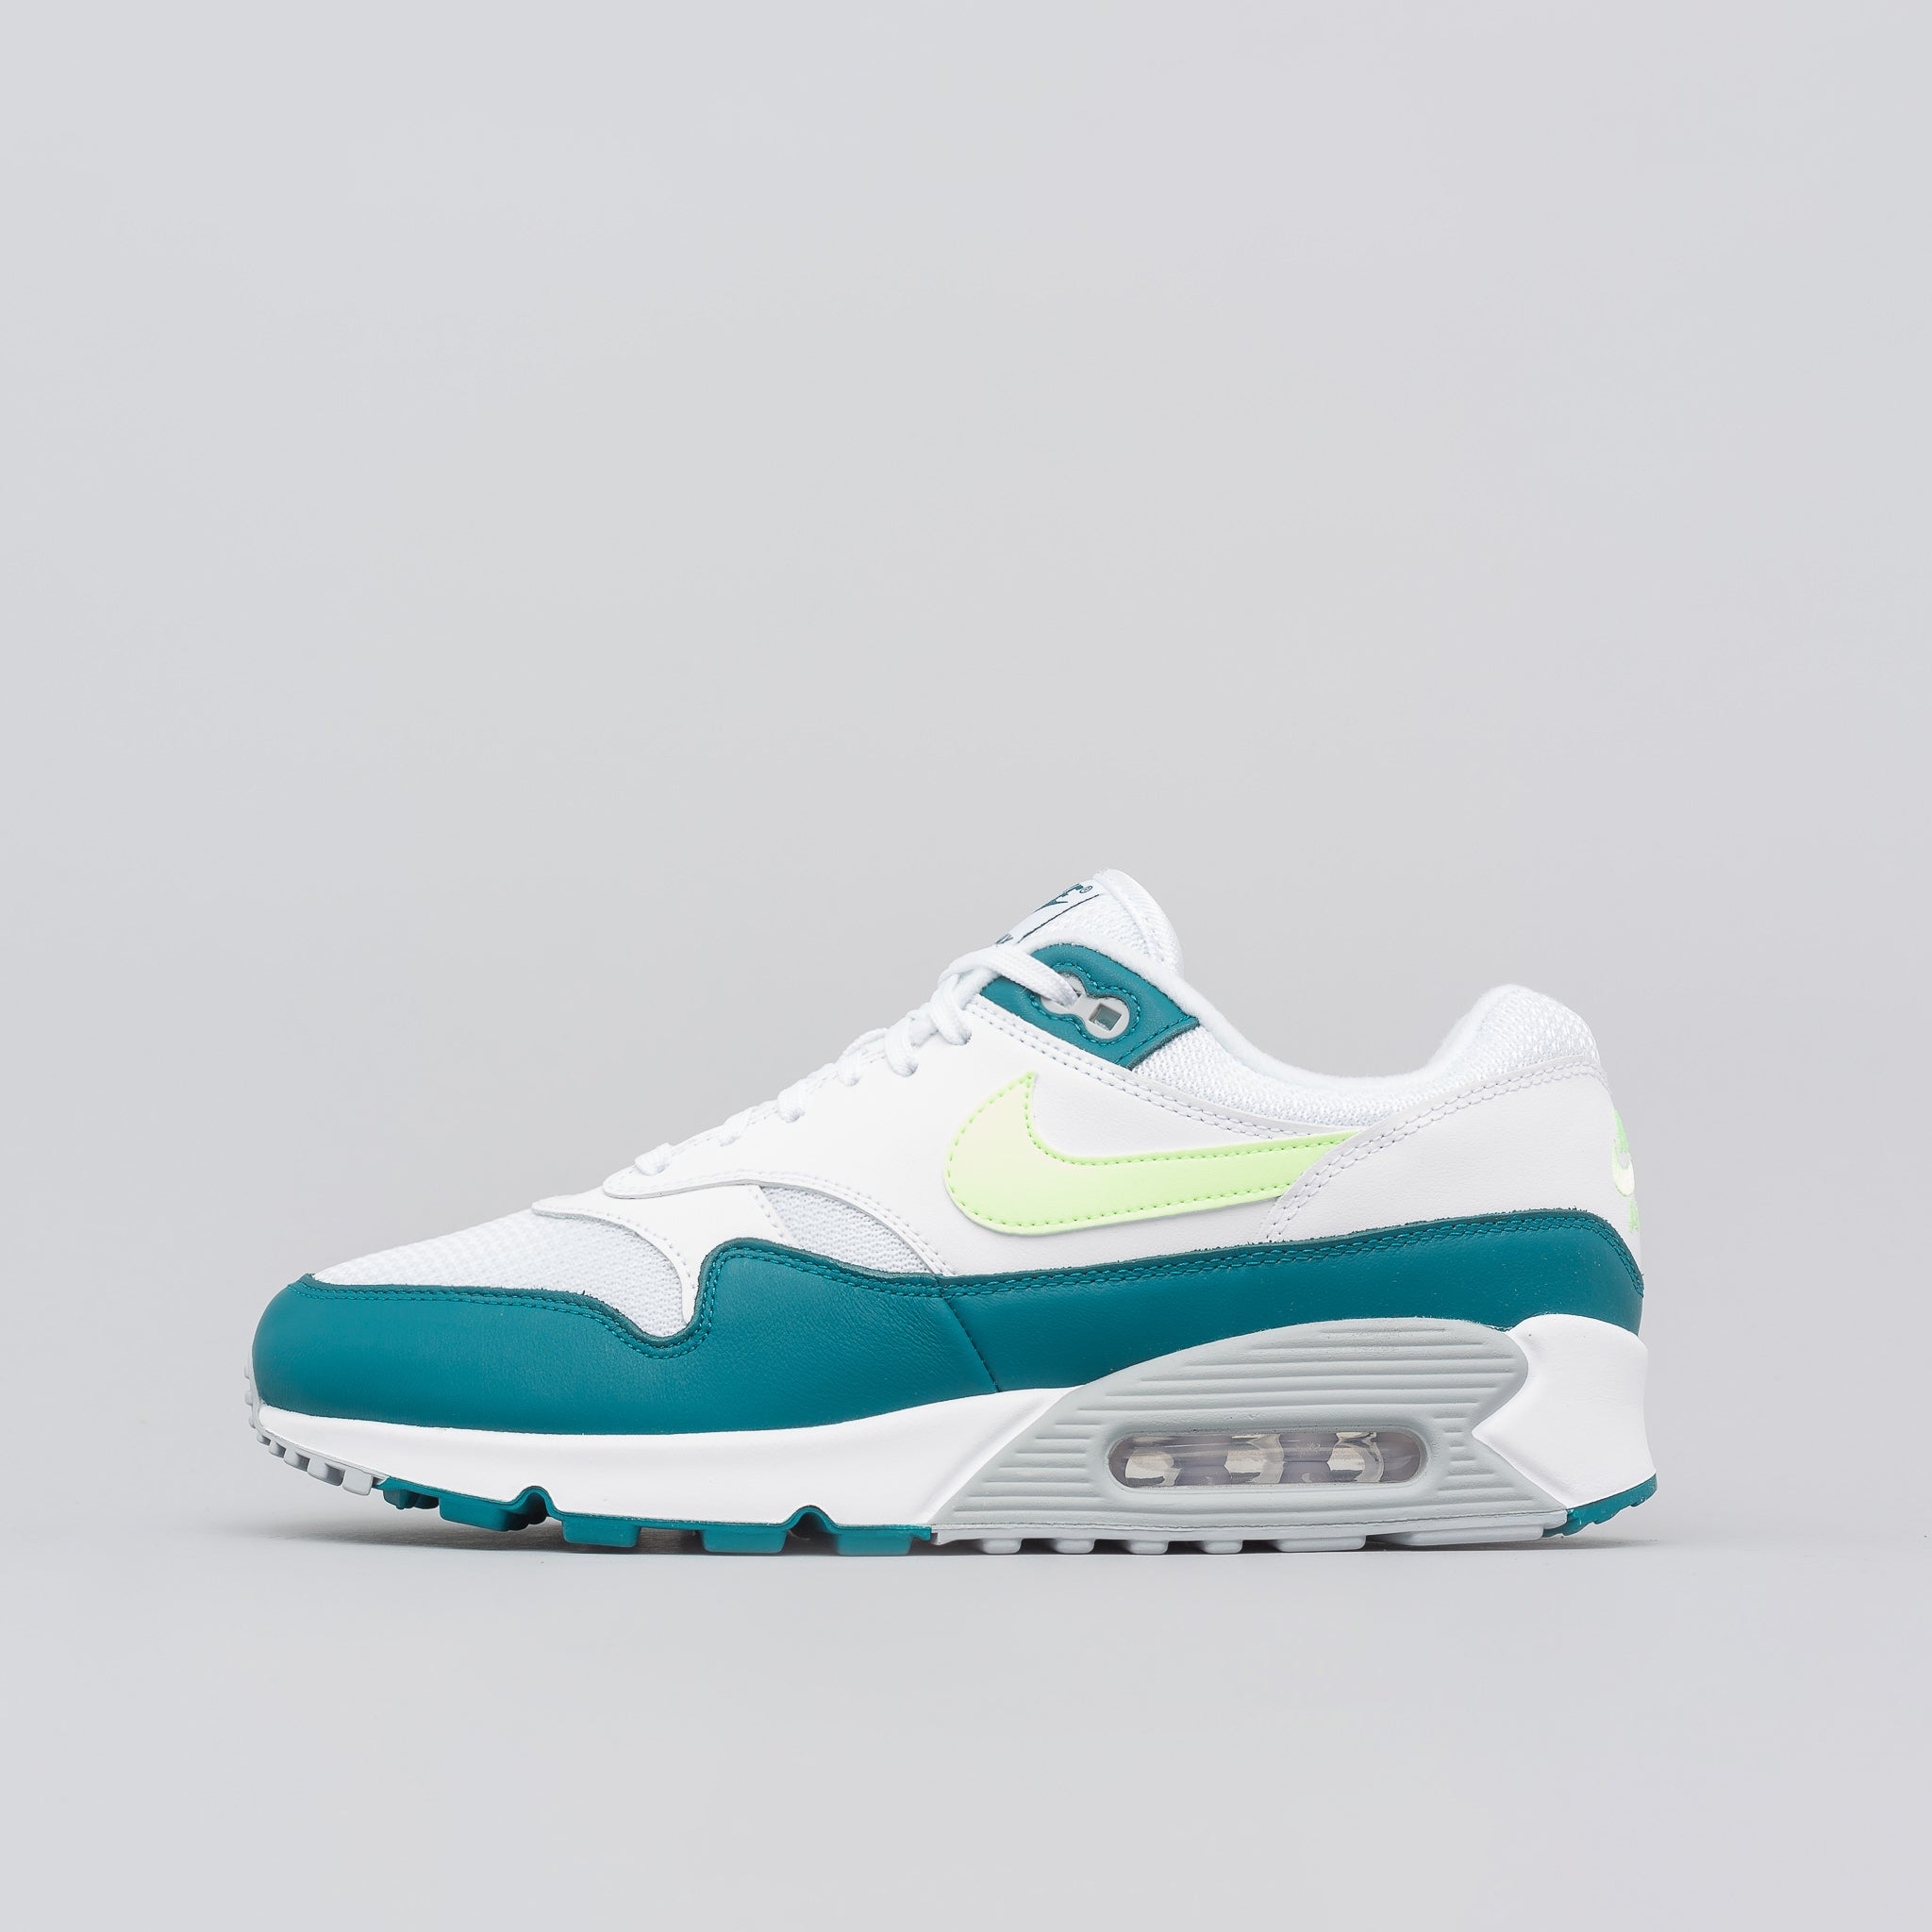 check out 2e26c e5237 ... where to buy air max 90 1 in white lime 12ffa dcbb3